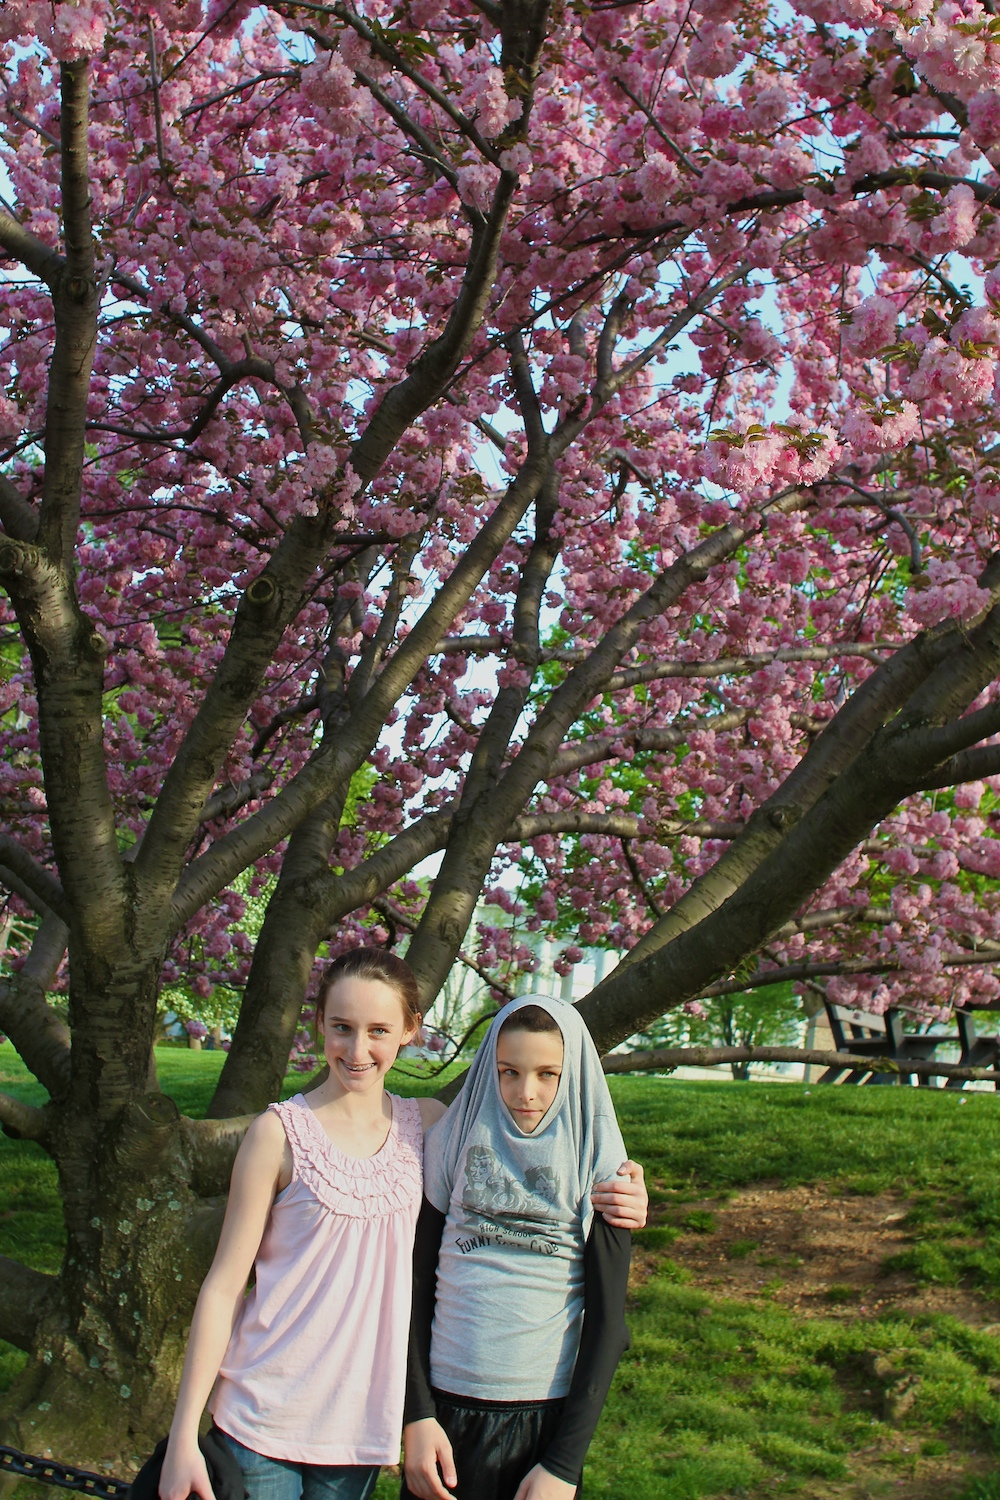 The cherry trees were still in bloom at Arlington National Cemetery